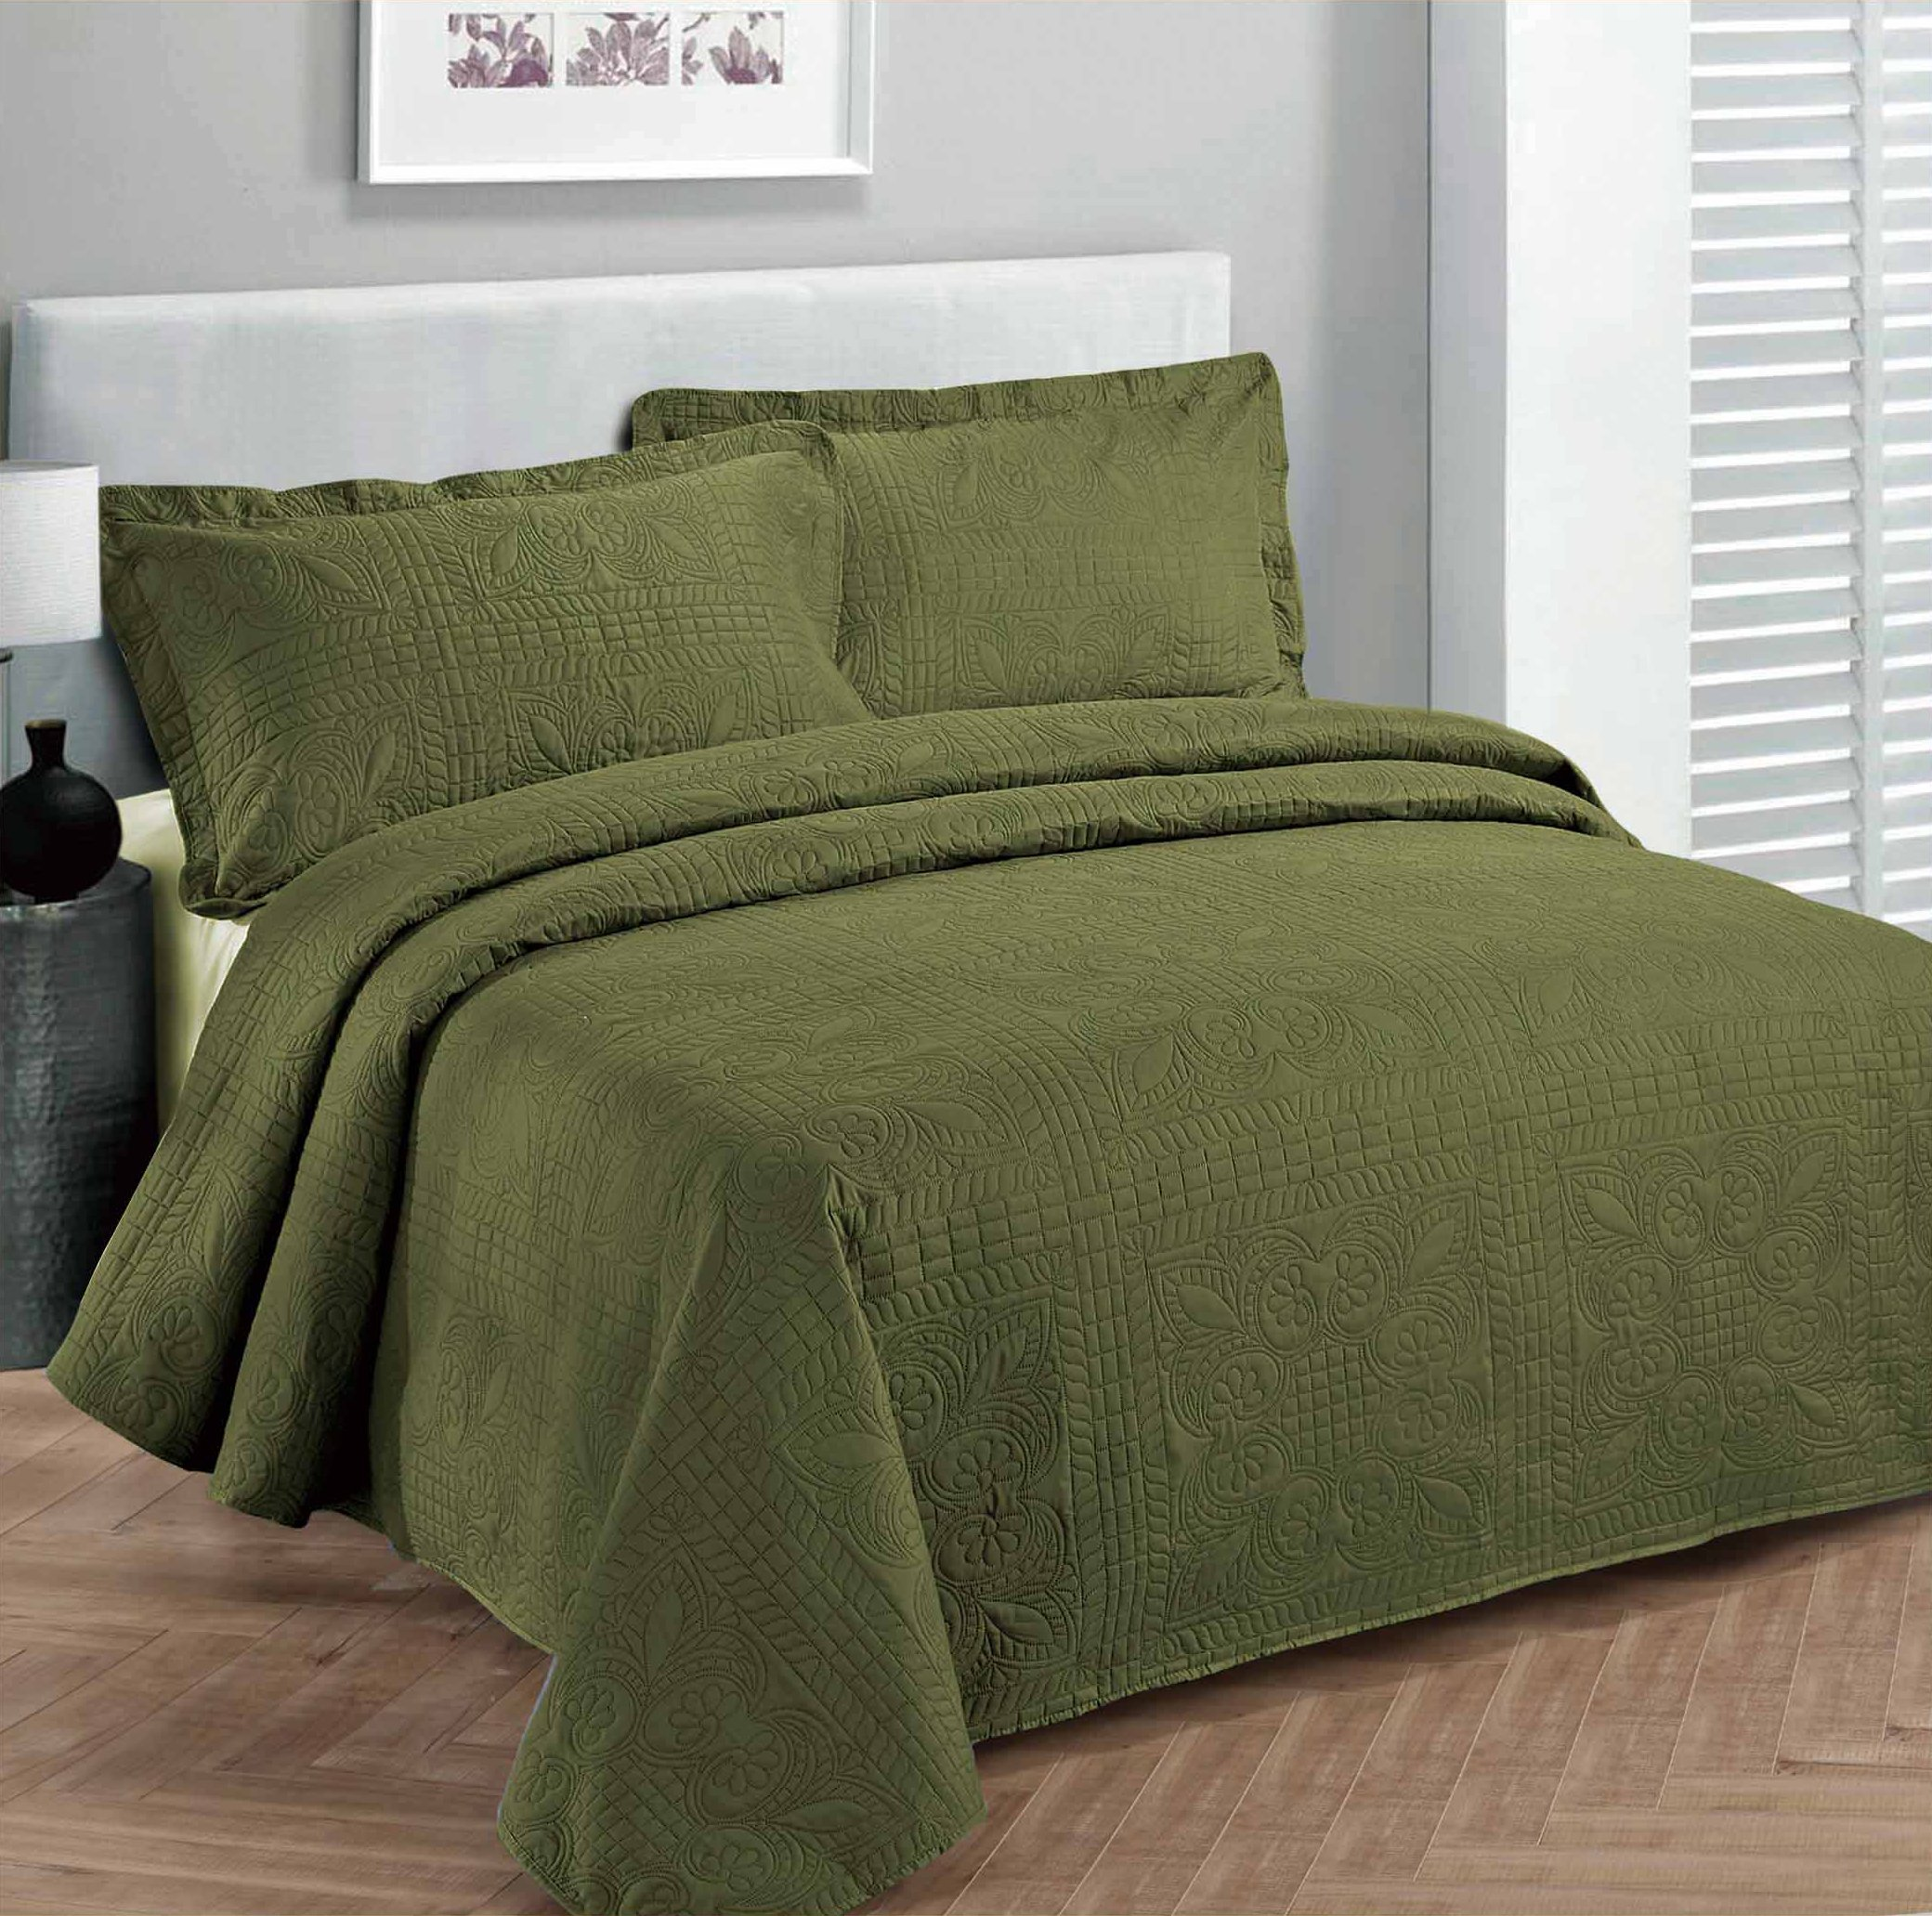 Fancy Collection 3pc Luxury Bedspread Coverlet Embossed Bed Cover Solid Olive Green New Over Size King/california King 118''x 106''